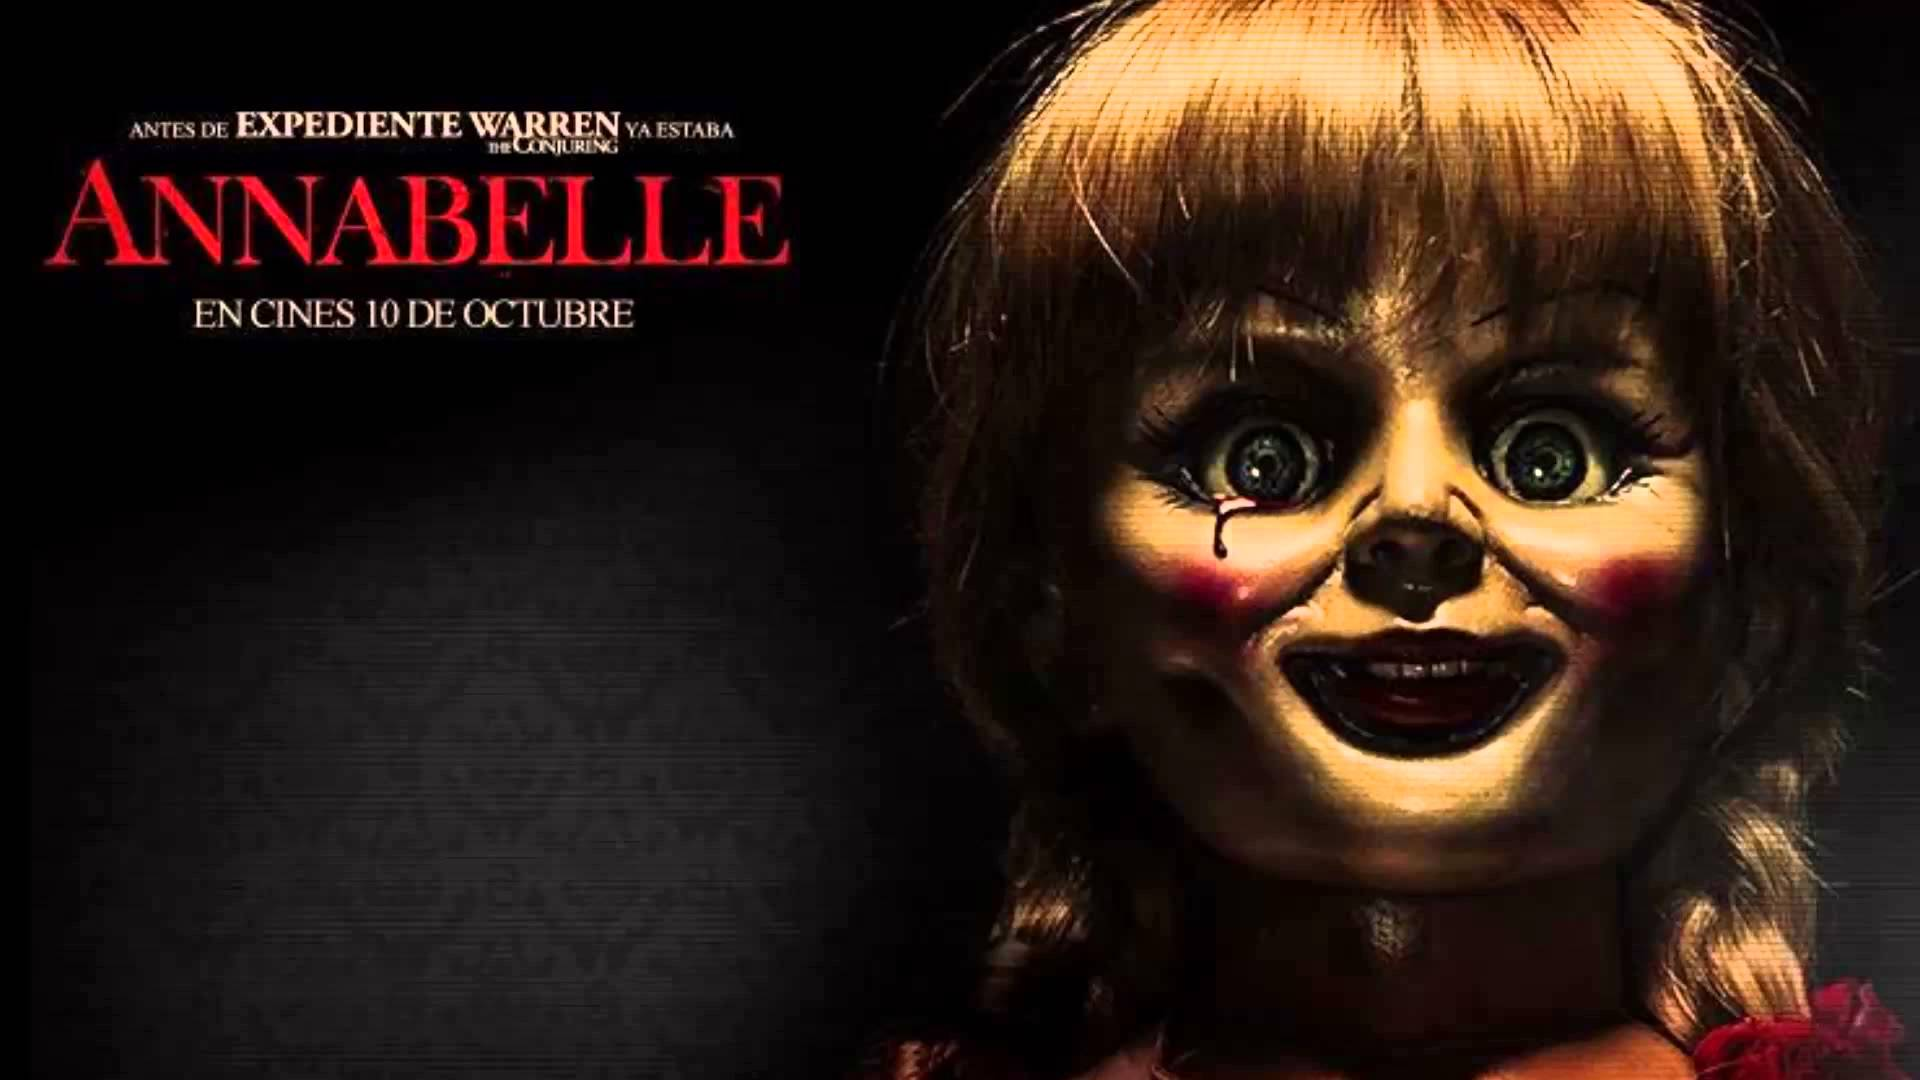 Annabelle full hd wallpapers